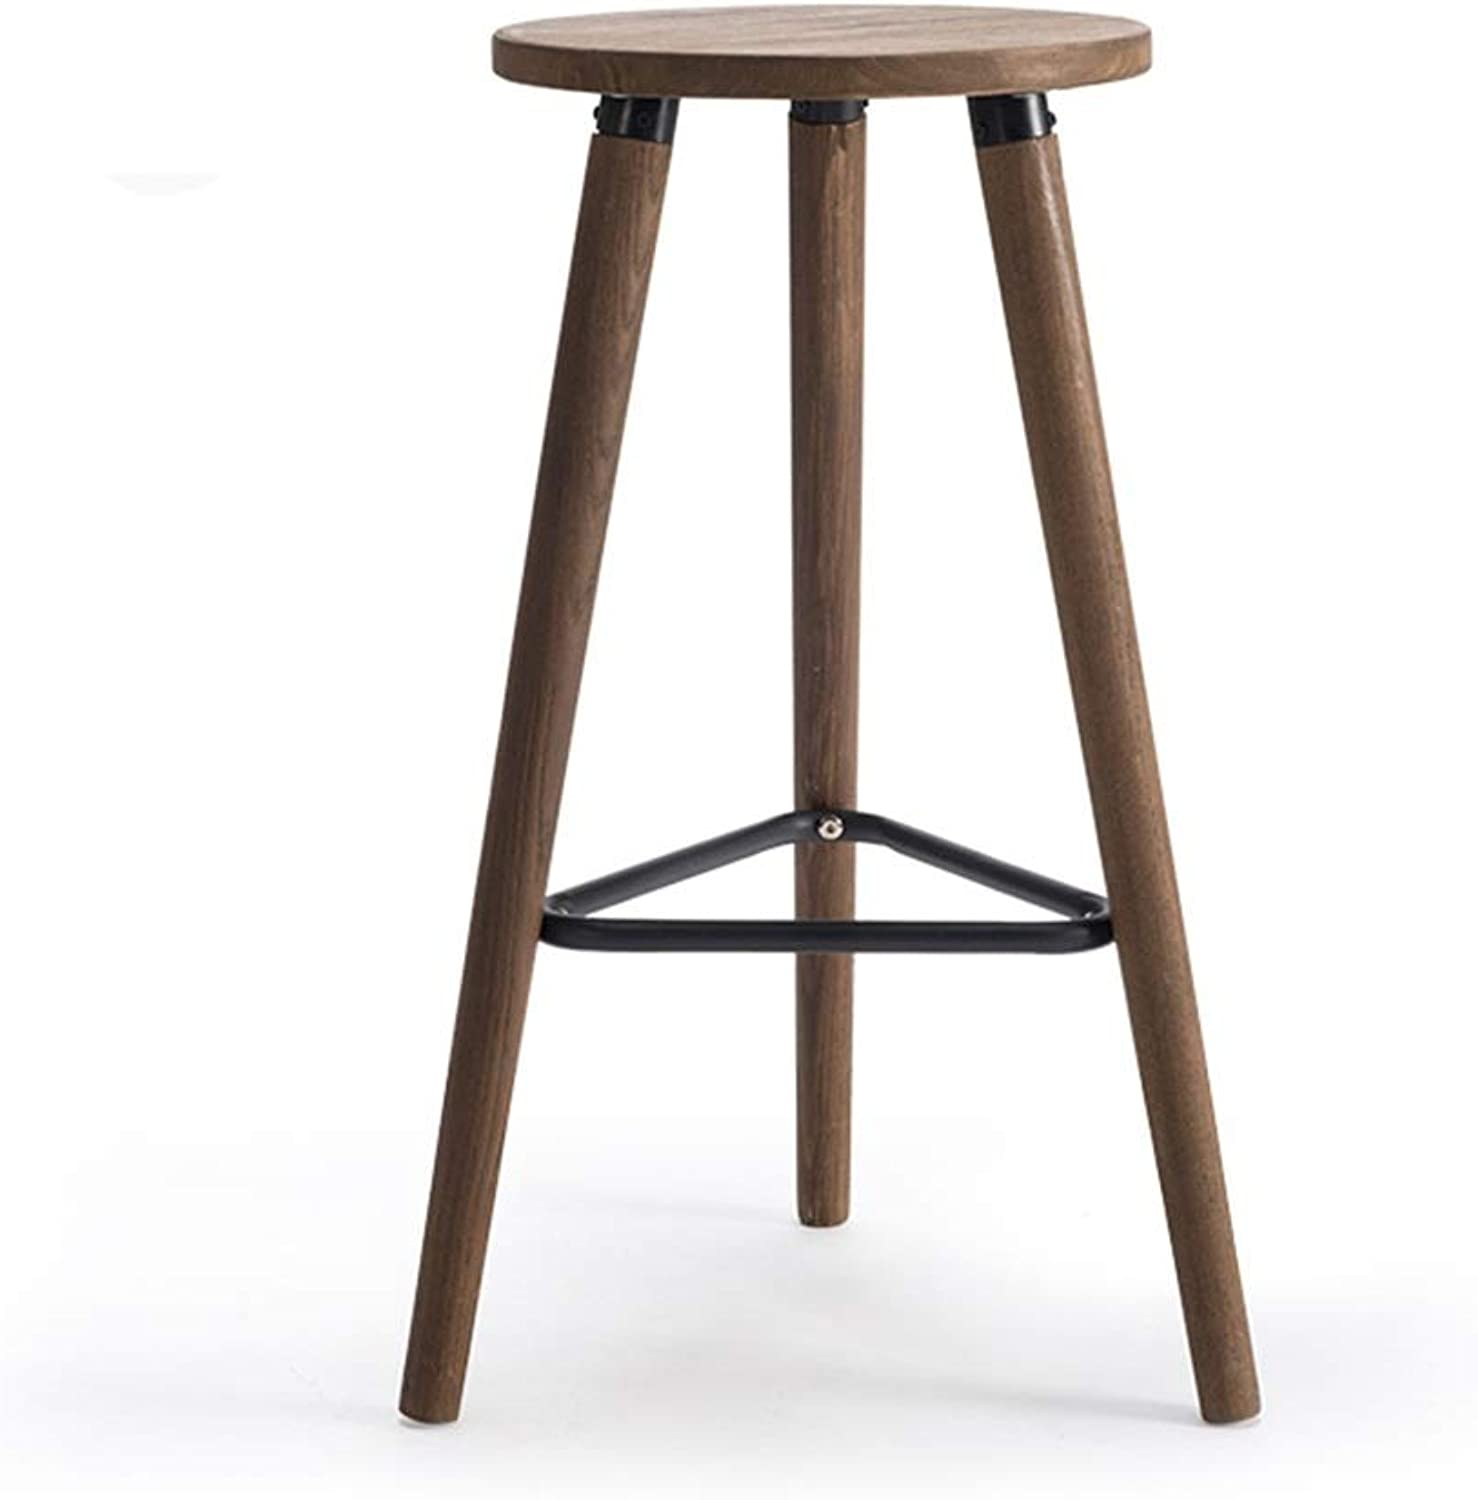 Personality Solid Wood Bar Stool Industrial Retro High Foot Chair Cafe Counter Round Seat Dining Table Creative Household 0527A